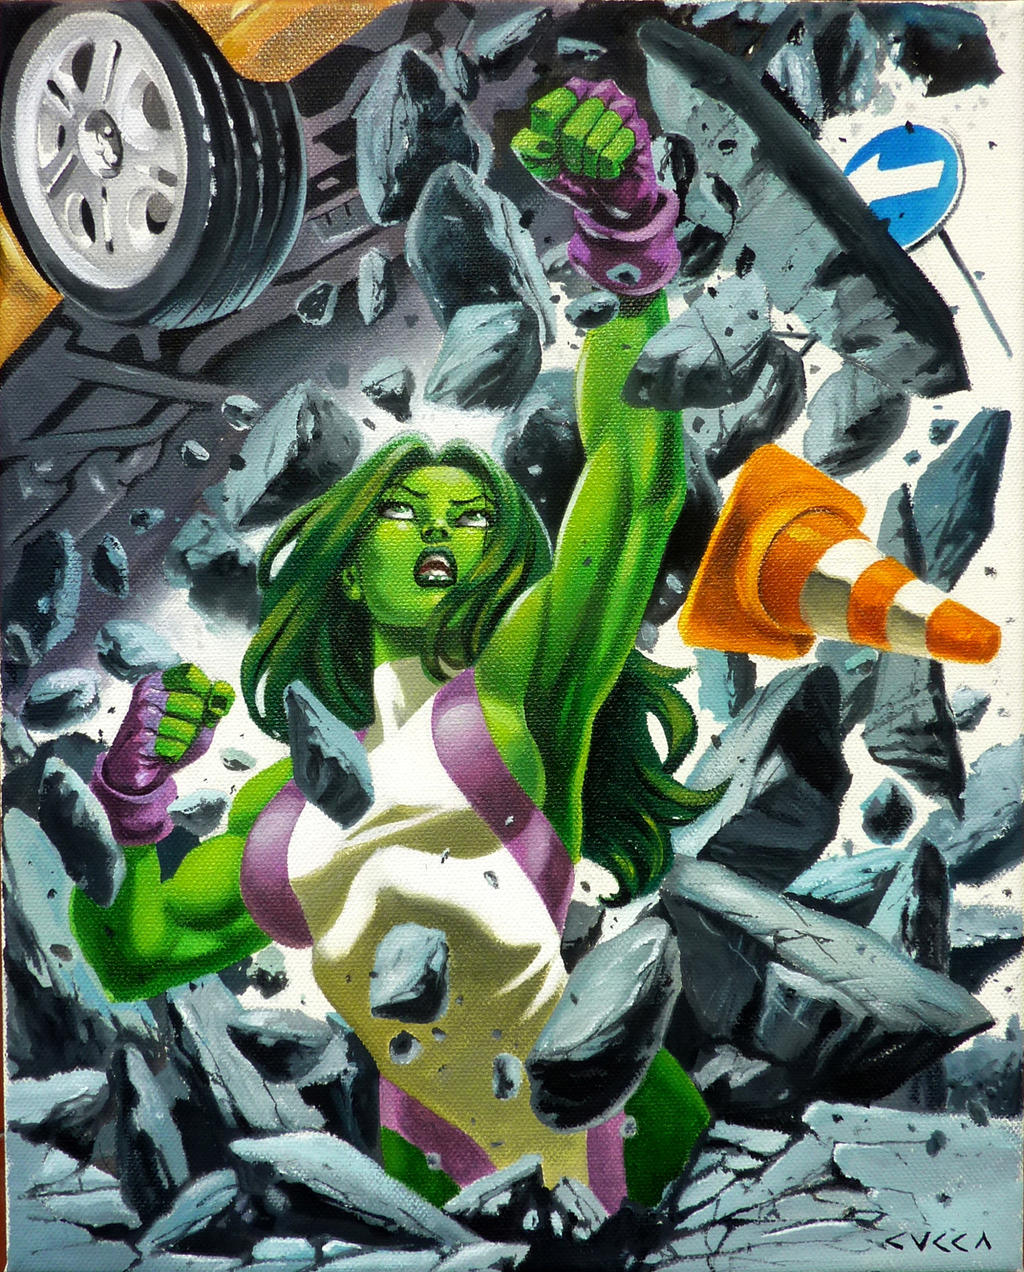 She Hulk Canvas by cuccadesign on DeviantArt: cuccadesign.deviantart.com/art/She-Hulk-Canvas-560798115